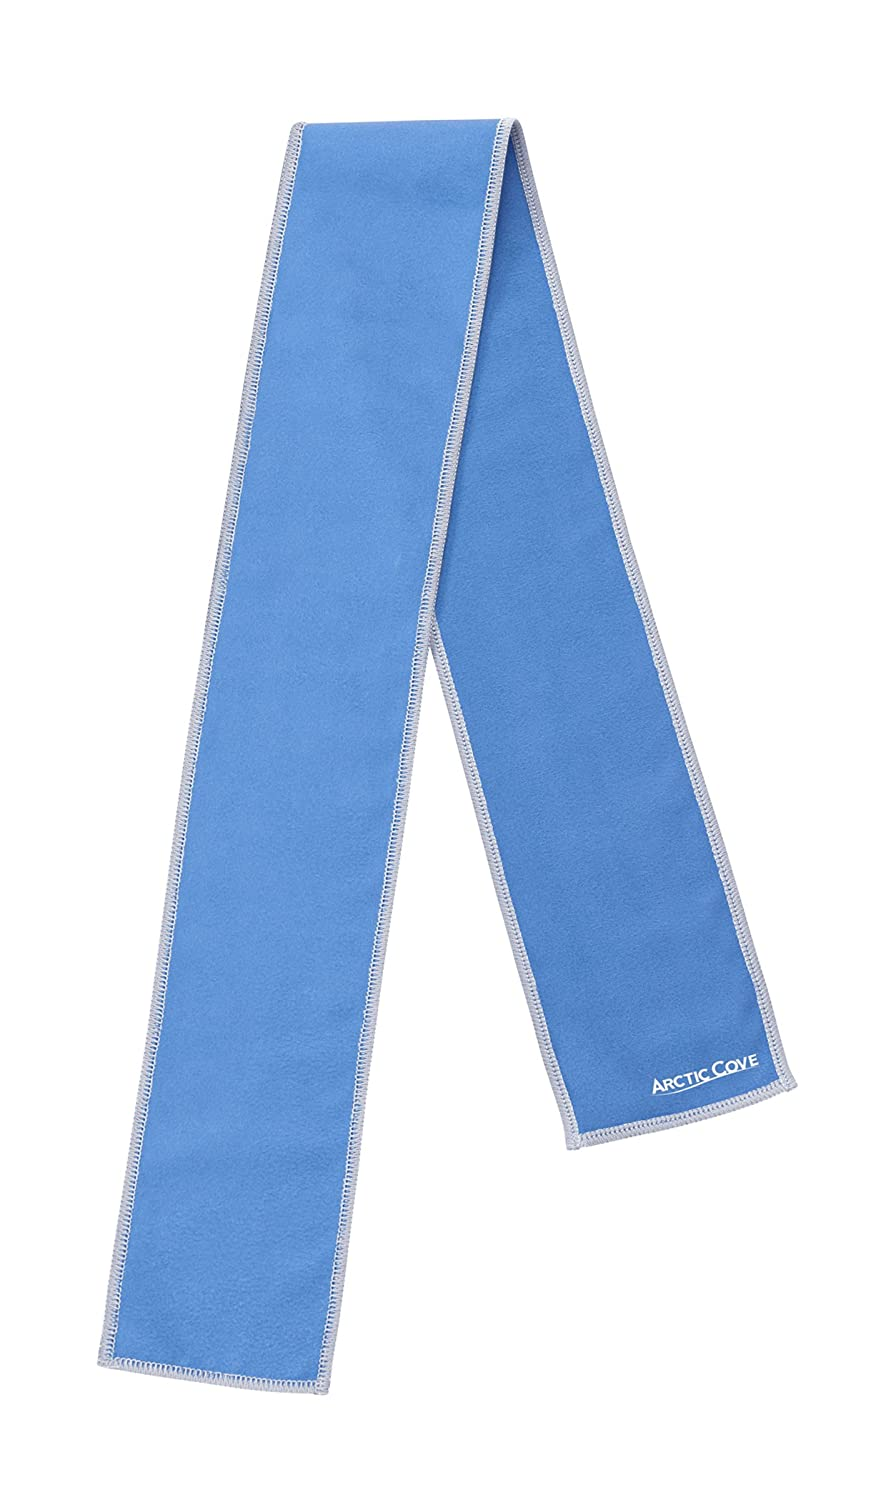 Arctic Cove MAC505CT 5 in. x 34 in. Standard Cooling Towel